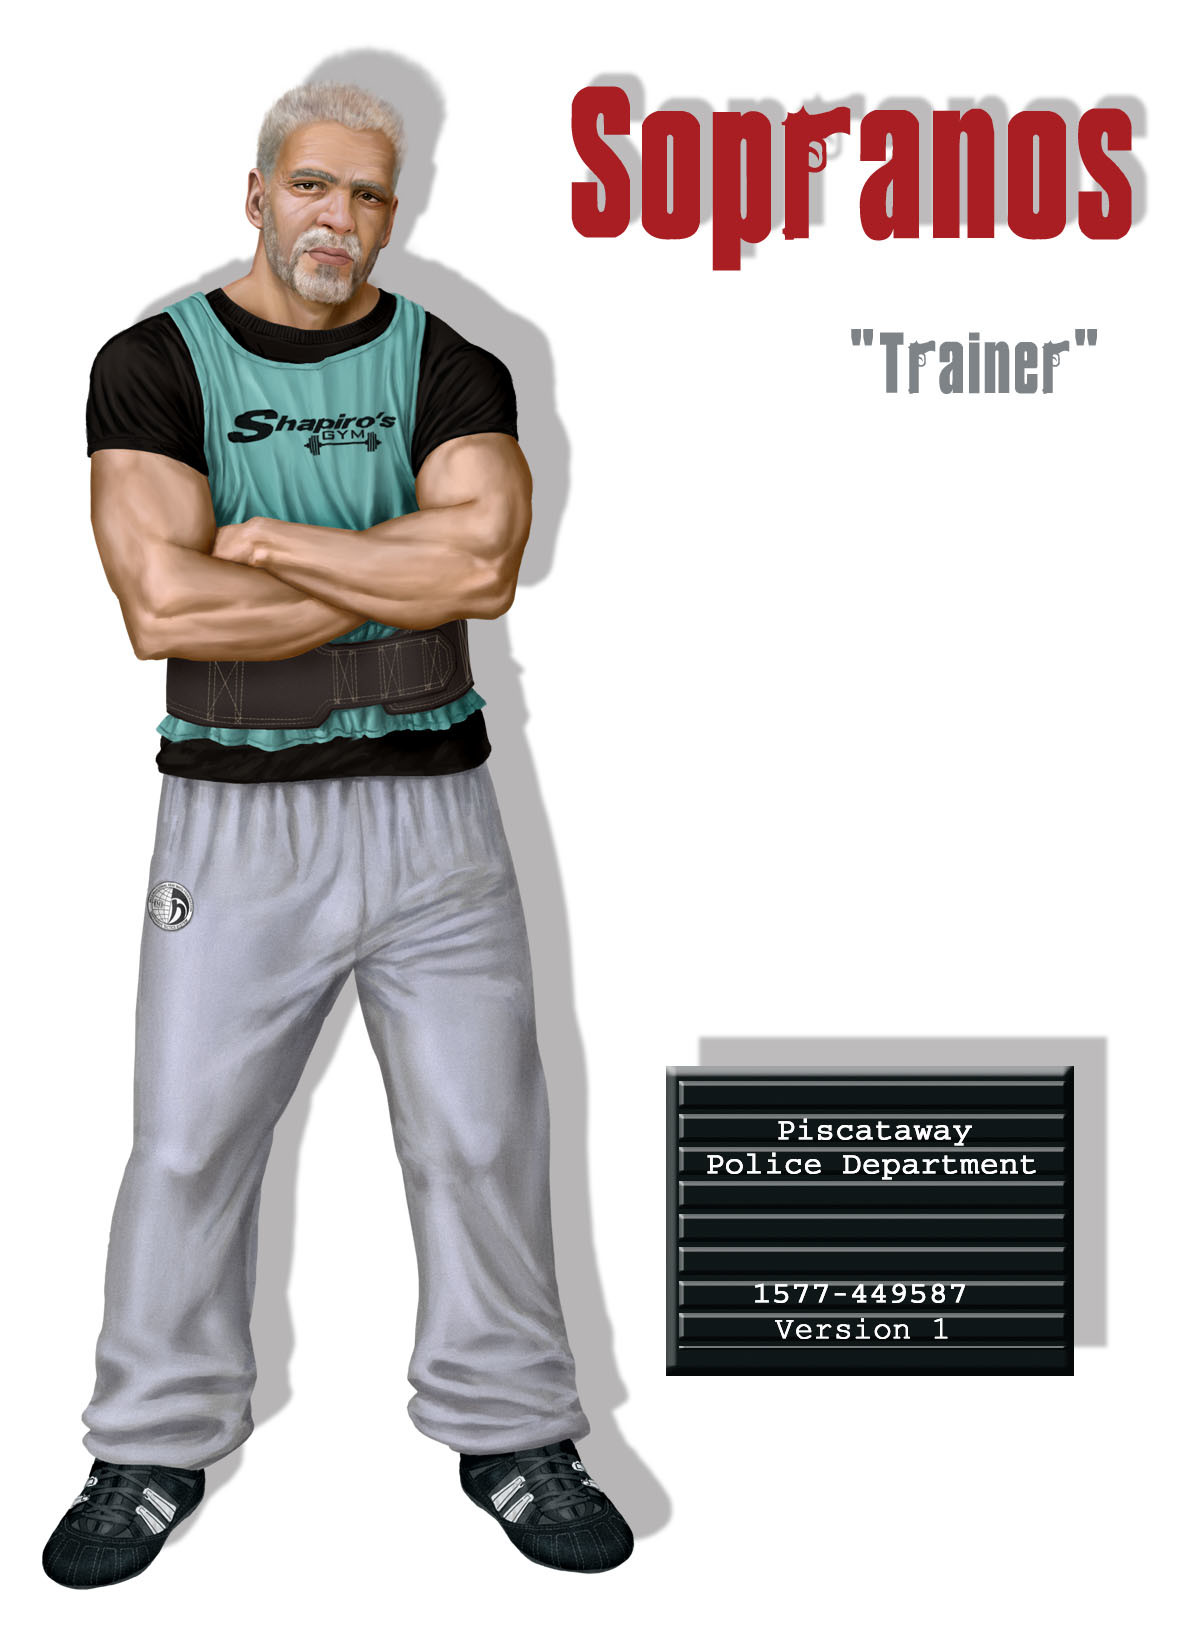 Jeff zugale sop 2nd trainer concept v1